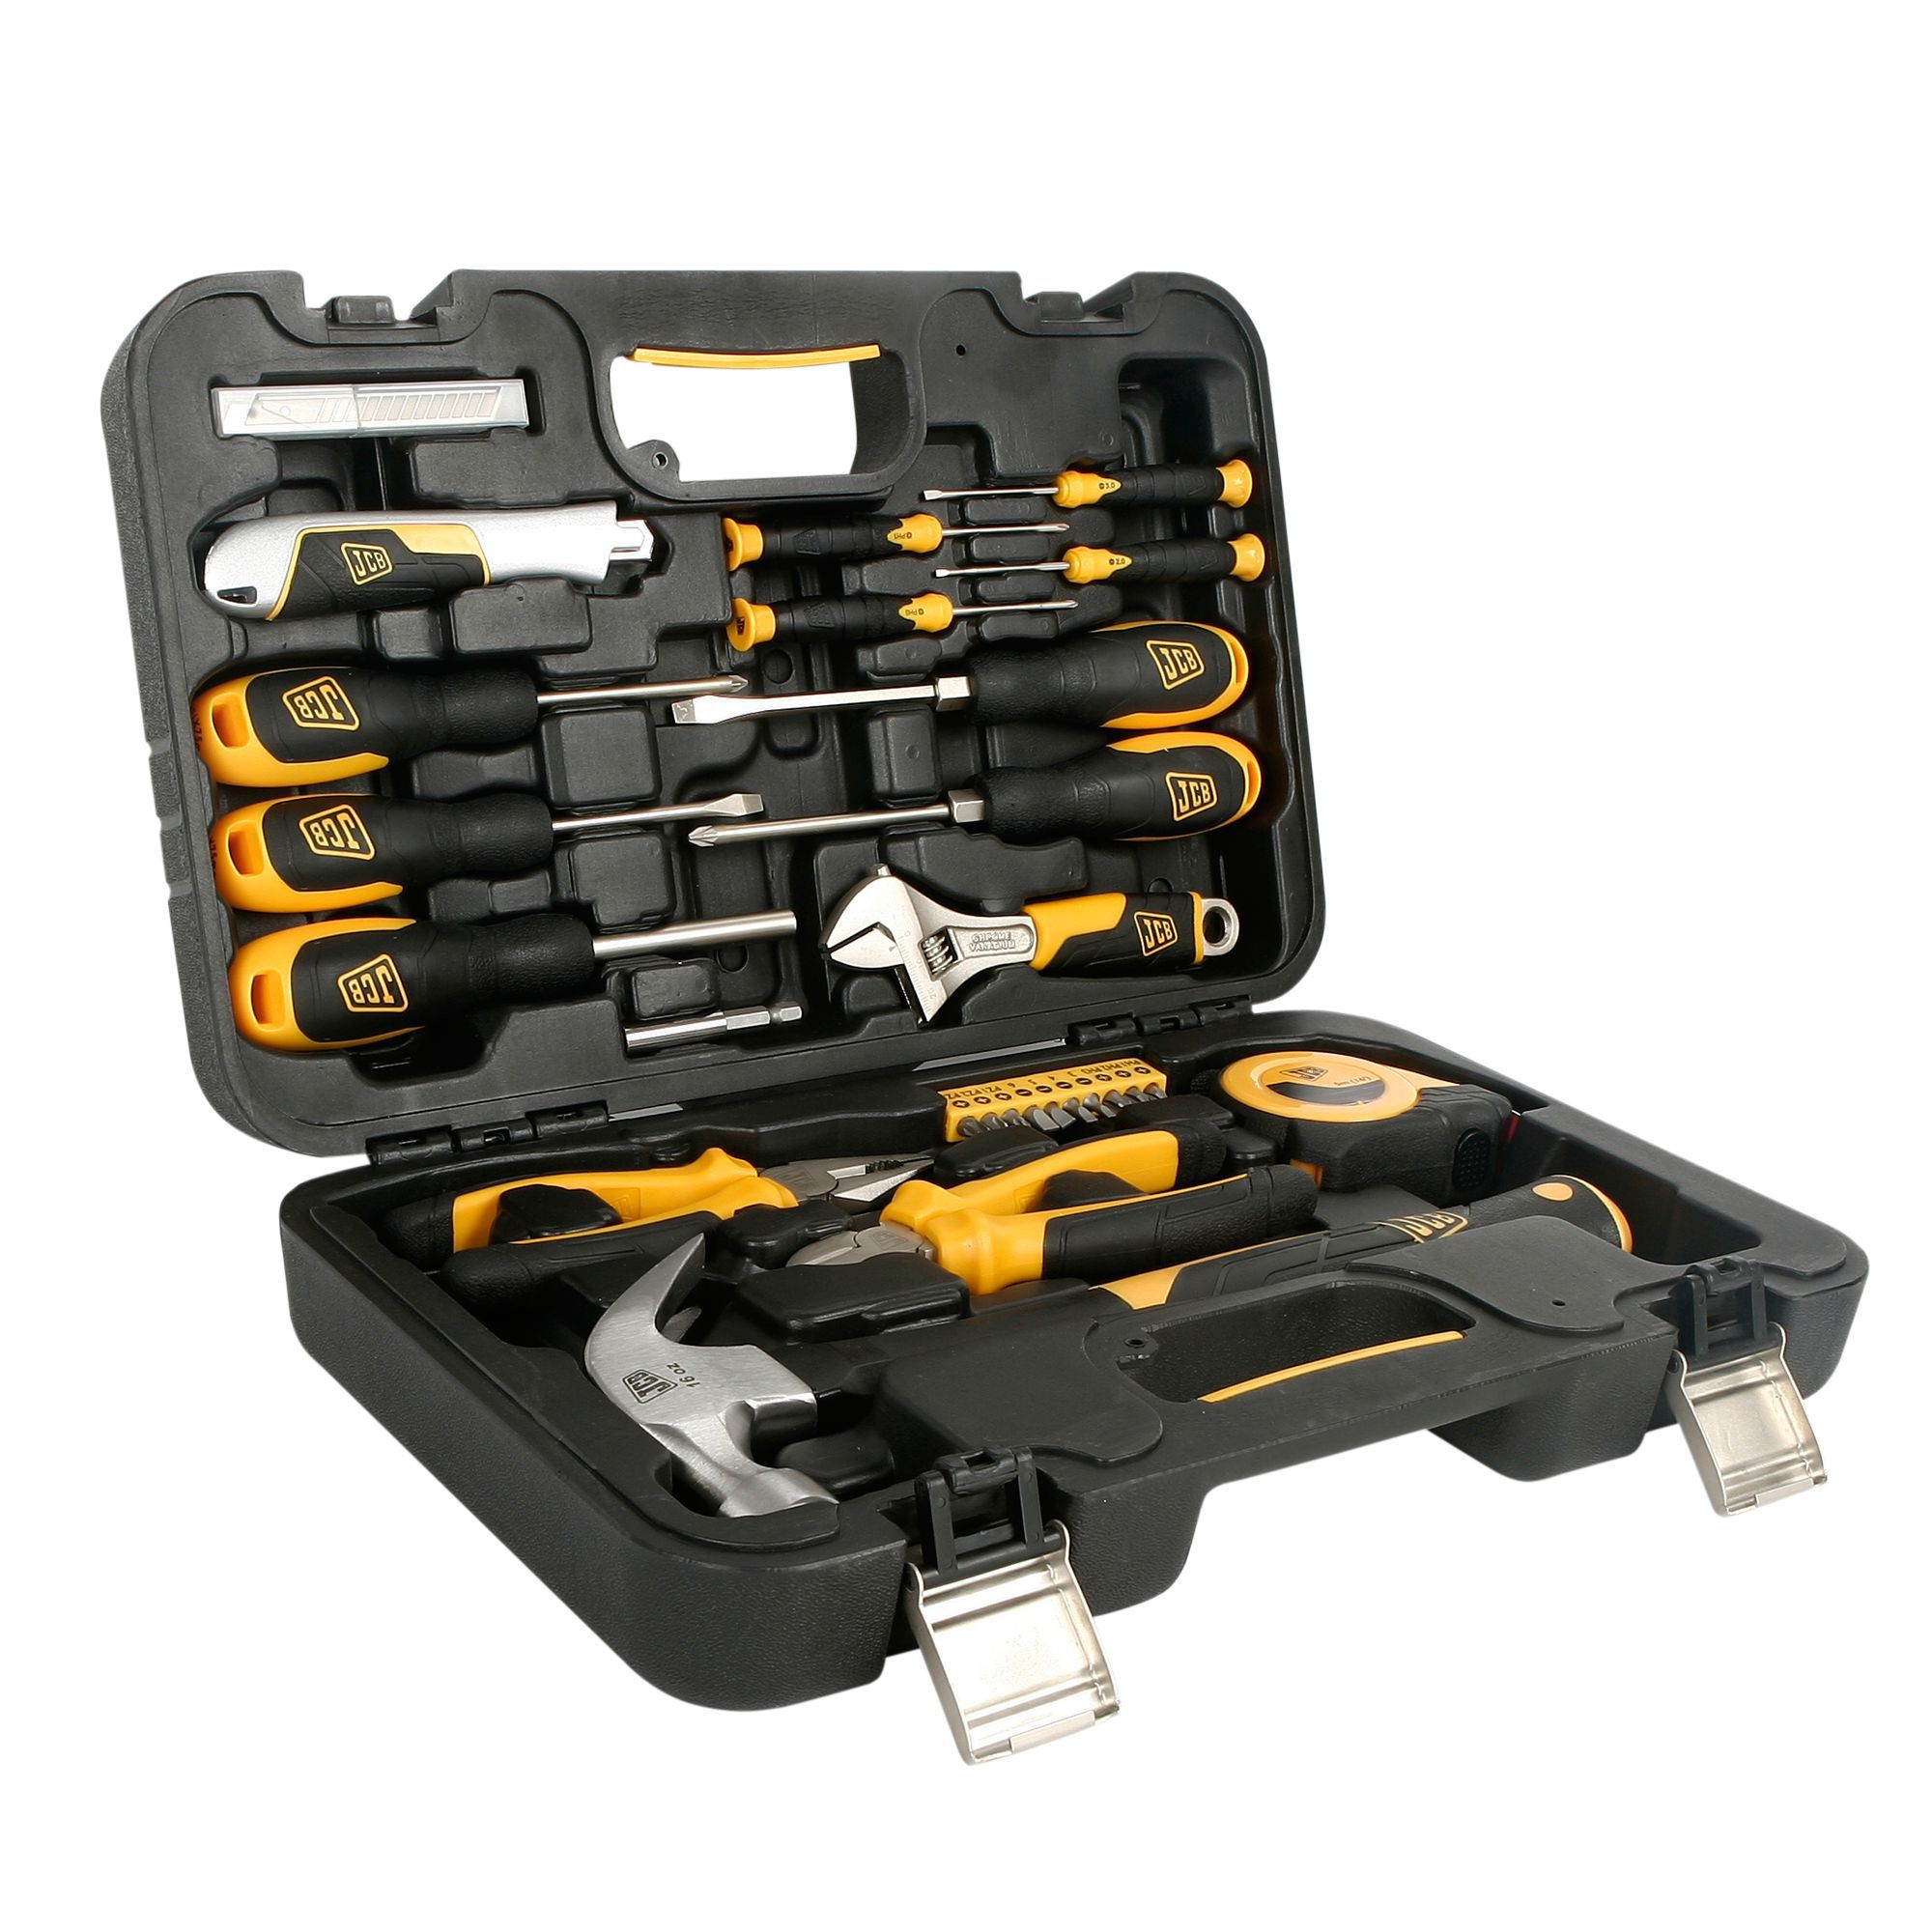 Jcb Piece Tool Kit Departments Diy At B Amp Q